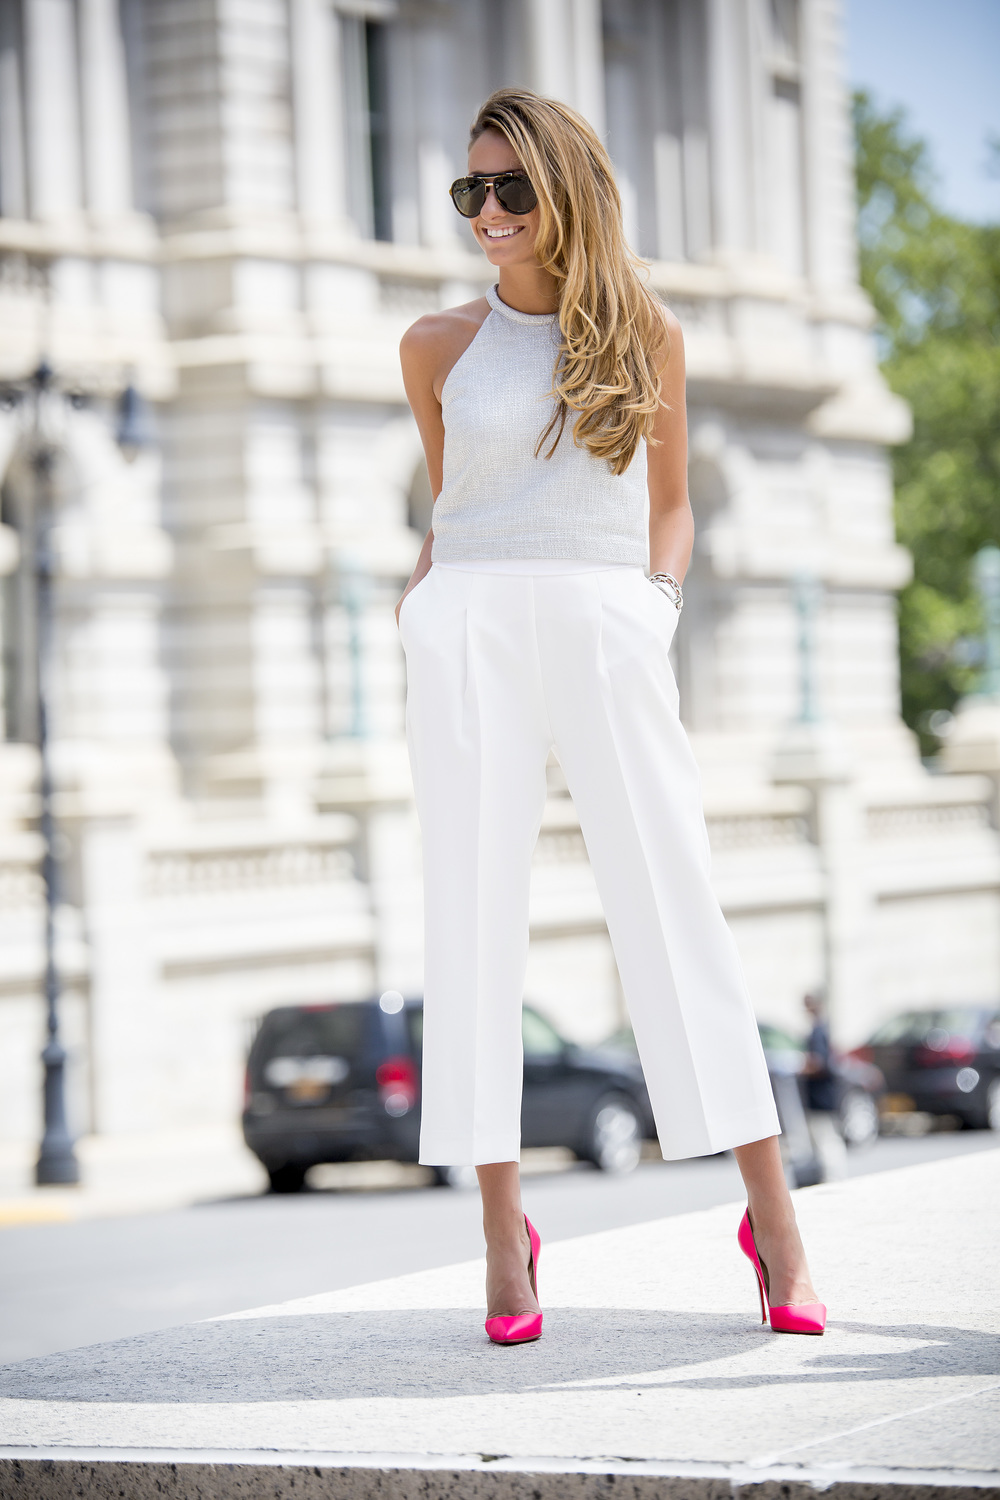 Top:A.L.C.|Culottes: Zara| Pumps: Christian Louboutin (Sold Out, Also Love This Pair)